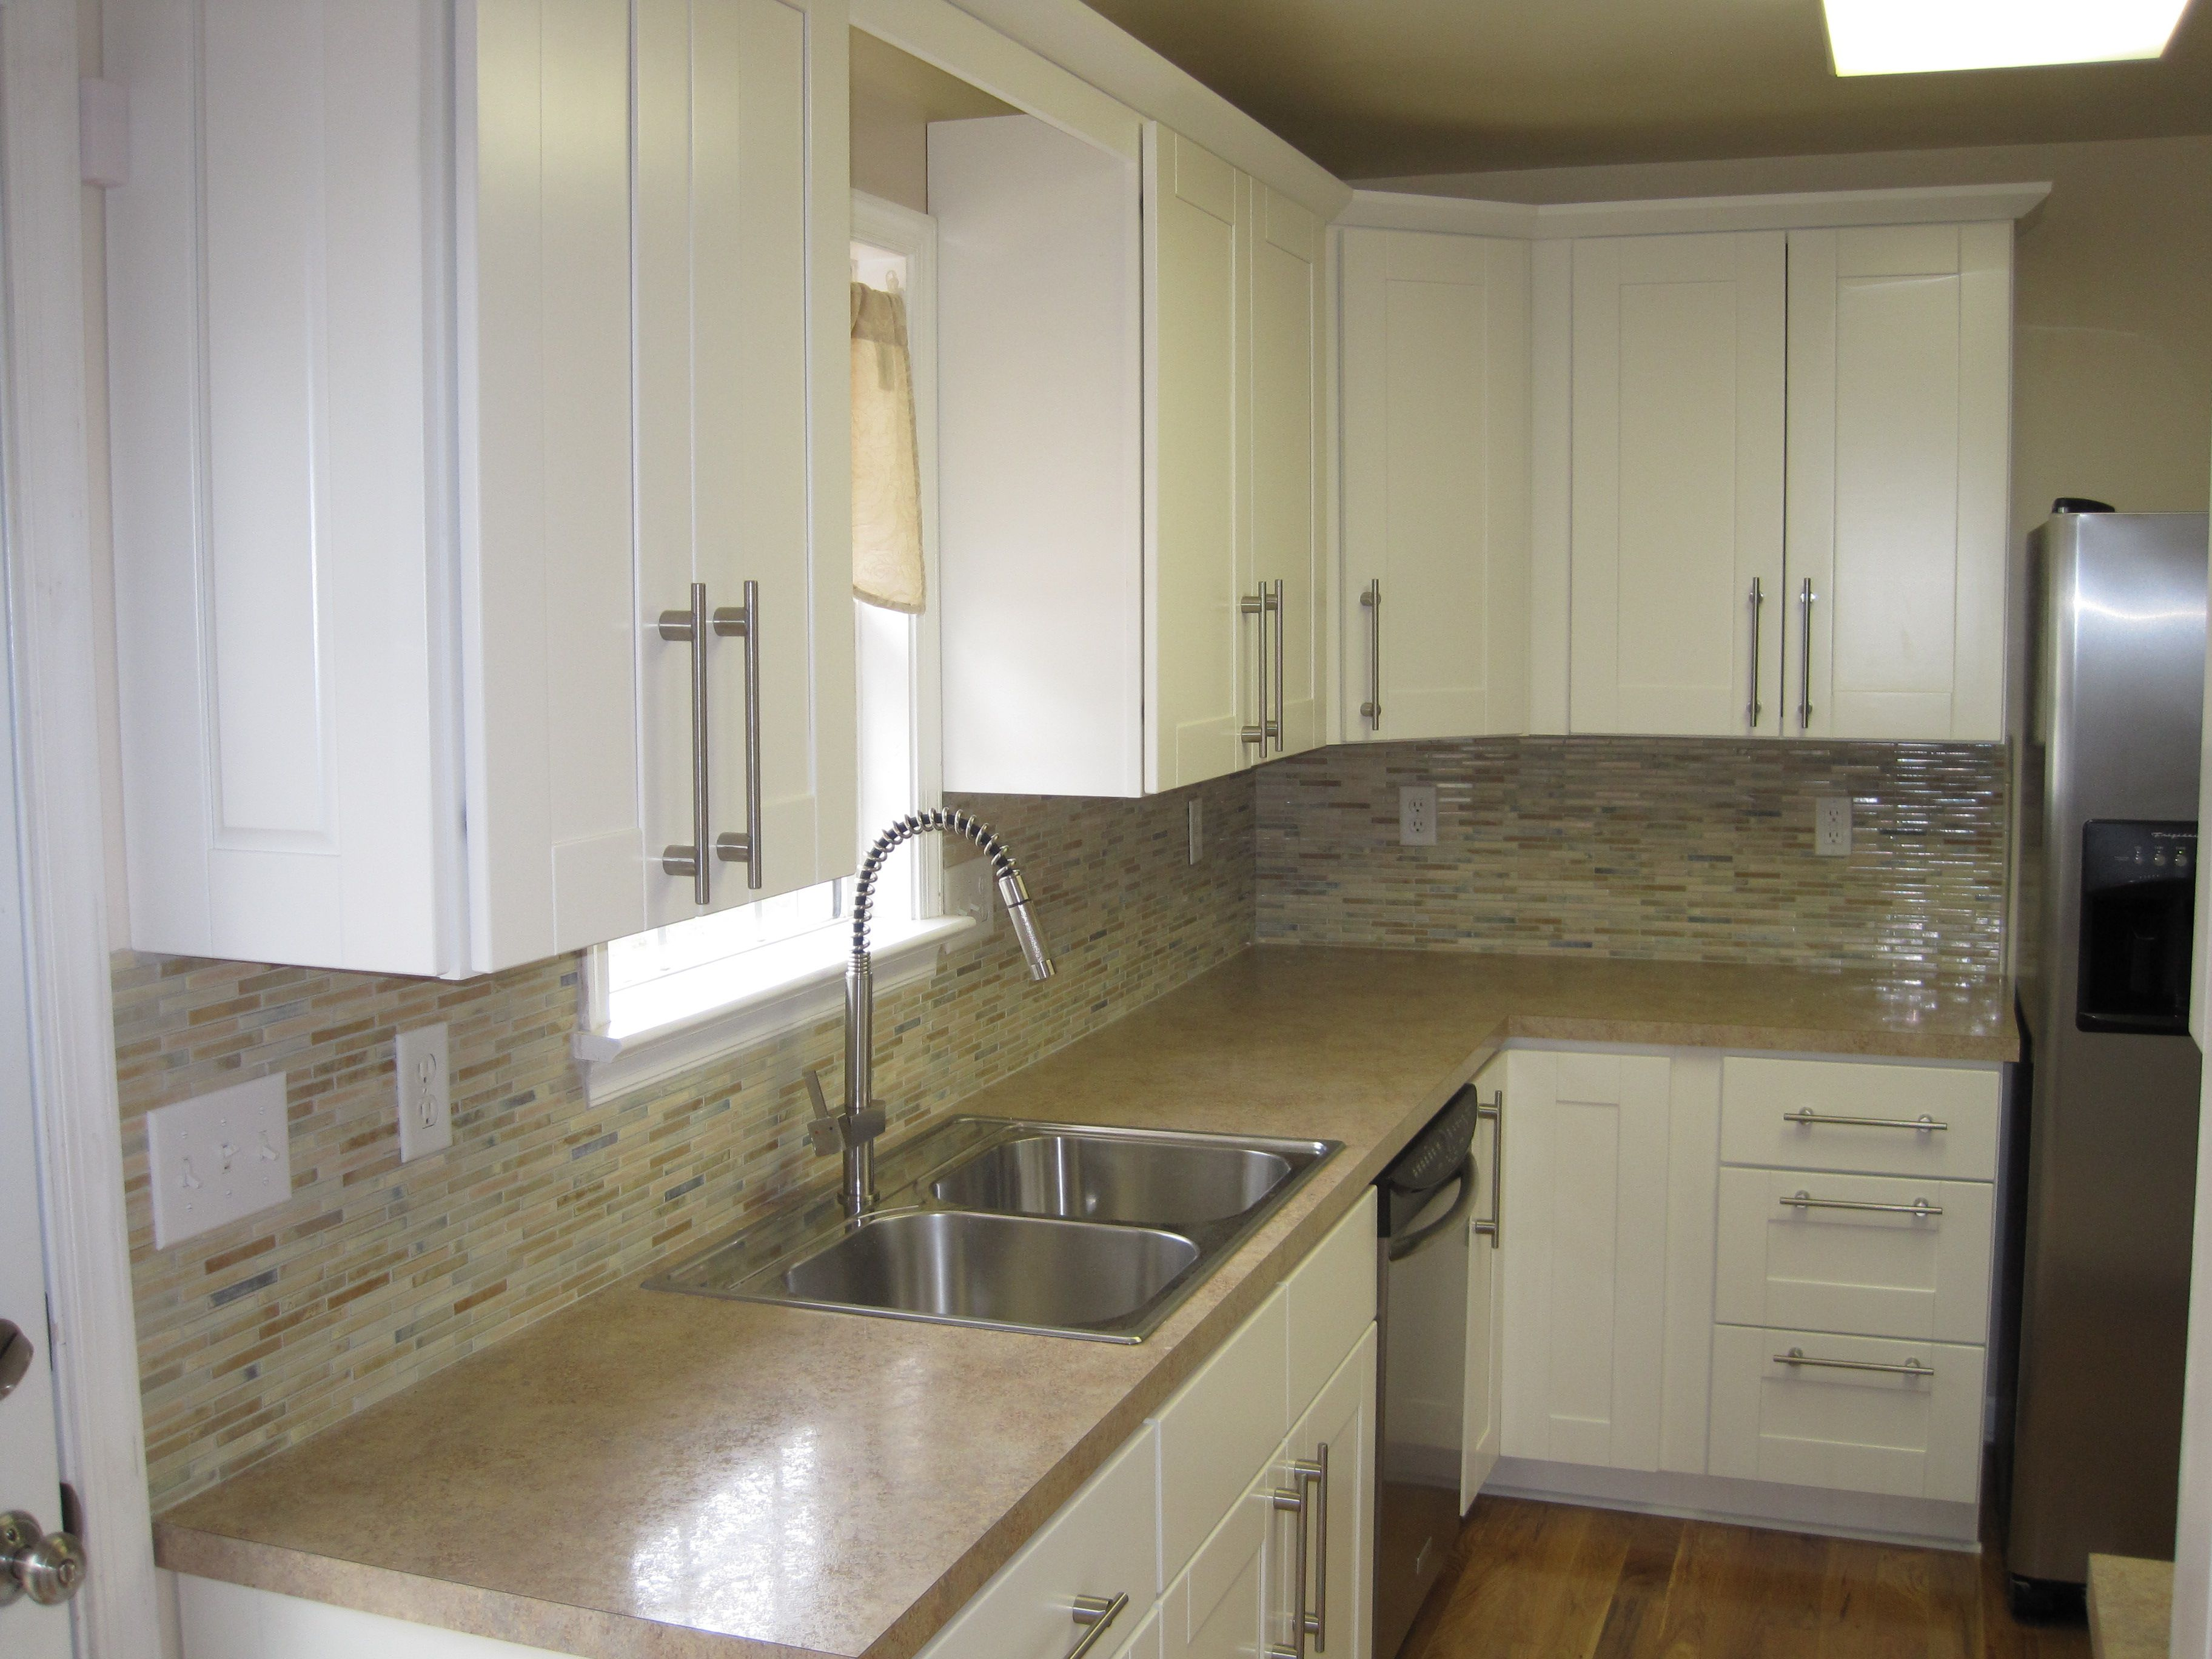 tan beige laminate counters w matching mosaic backsplash Kitchen Remodeling Portfolio by Handyman Connection